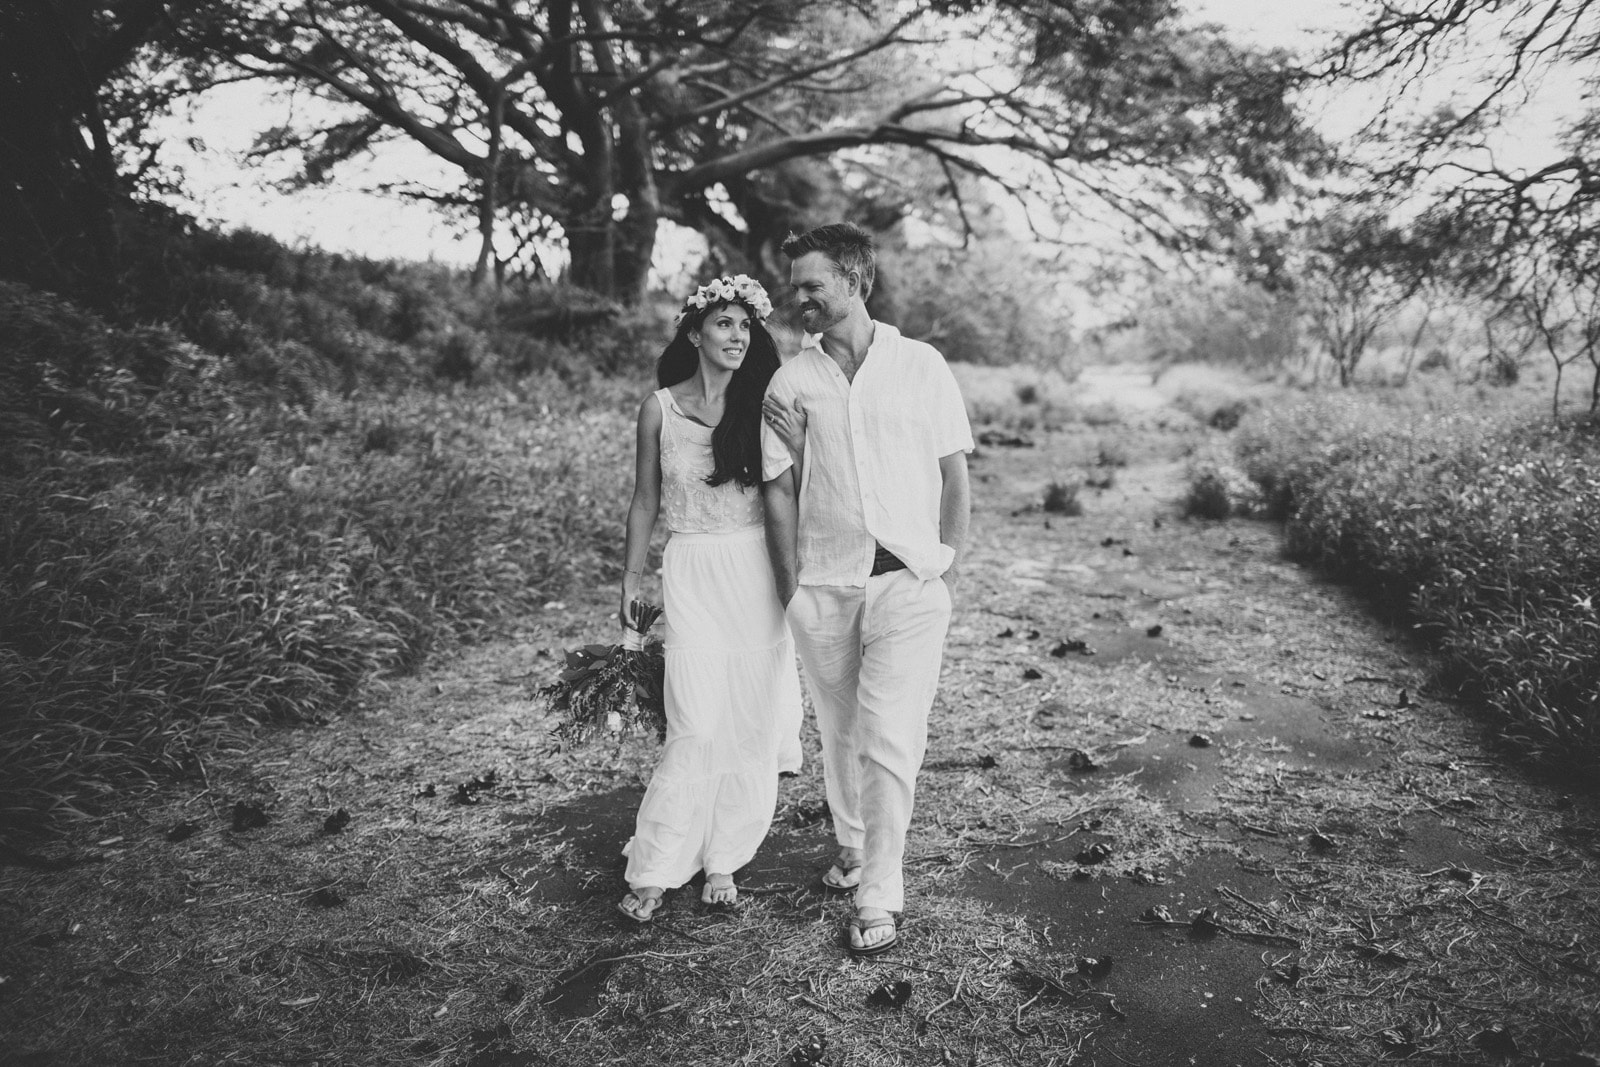 Maui_Wedding_Wailea_Kapalua_Hawaii_Photographer_032